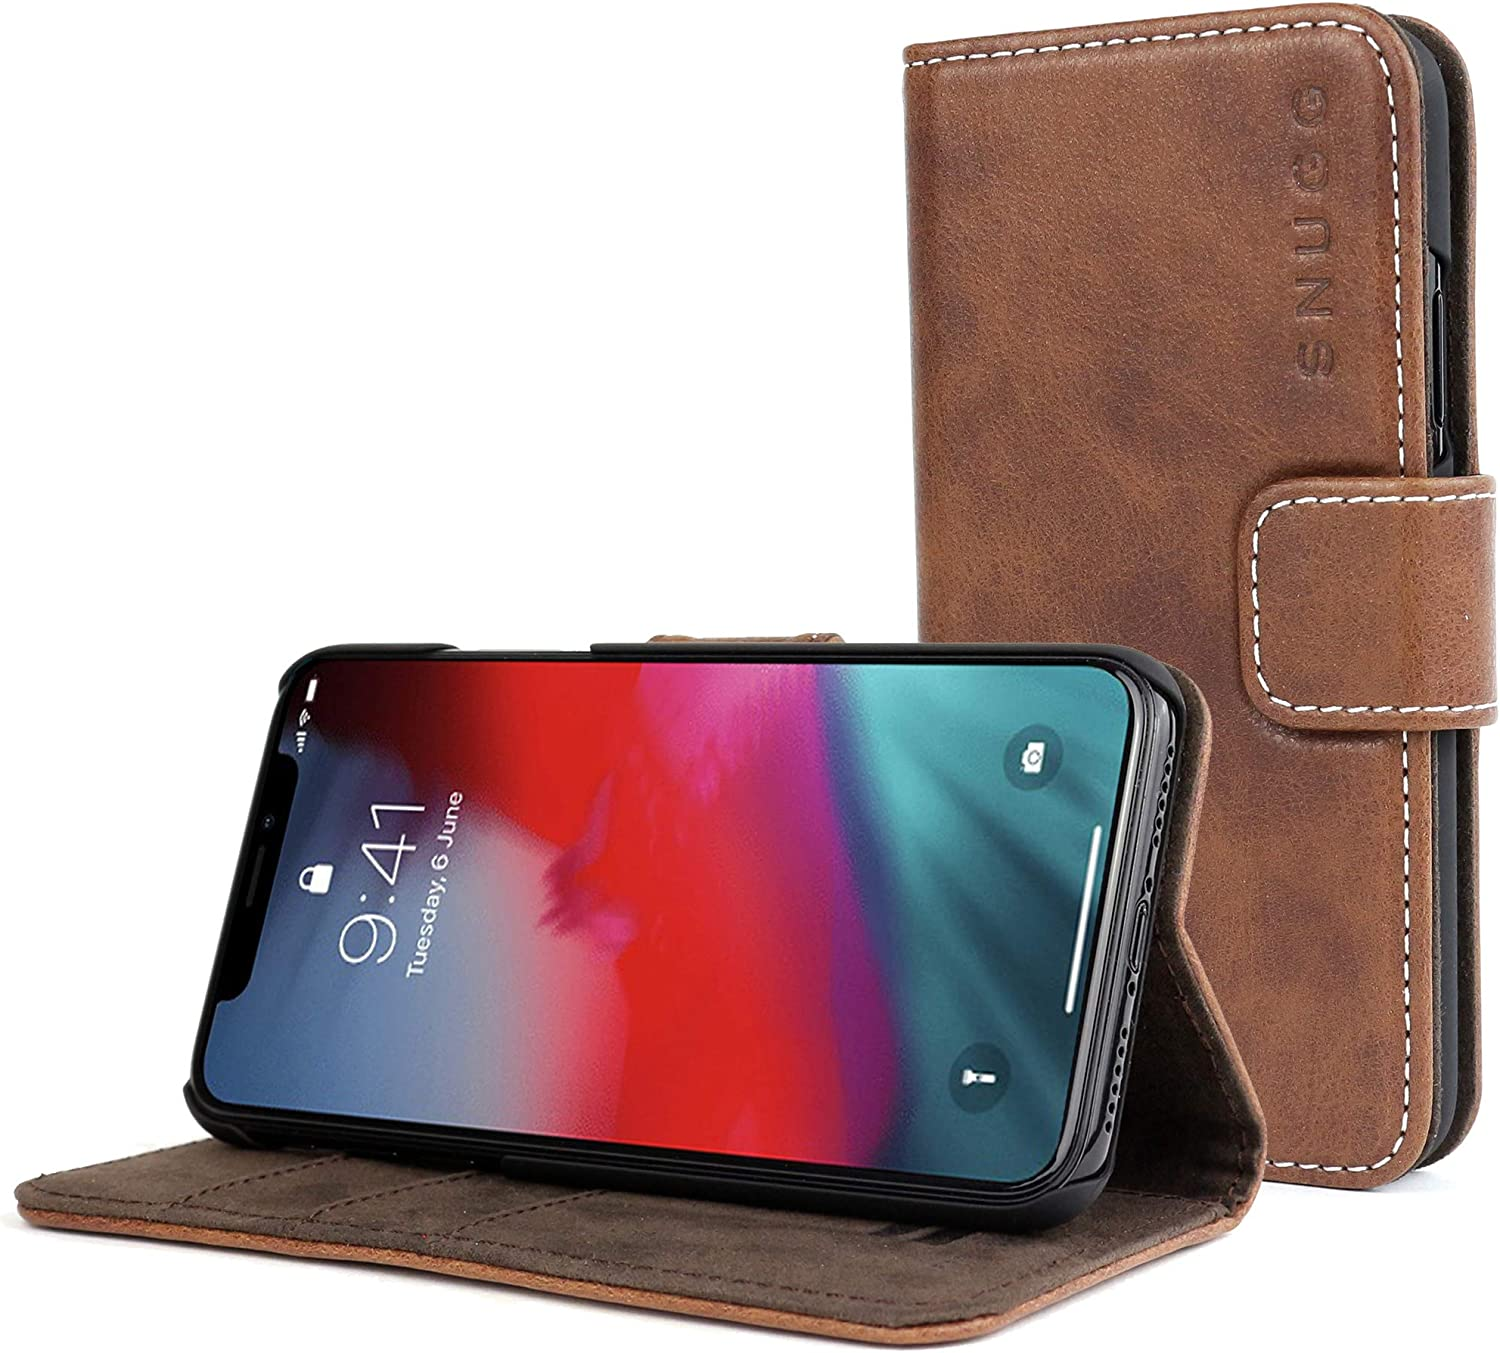 Leather Card Case Wallet with Handy Stand Feature Snugg iPhone 12 Pro Max Wallet Case Legacy Series Flip Phone Case Cover in Red